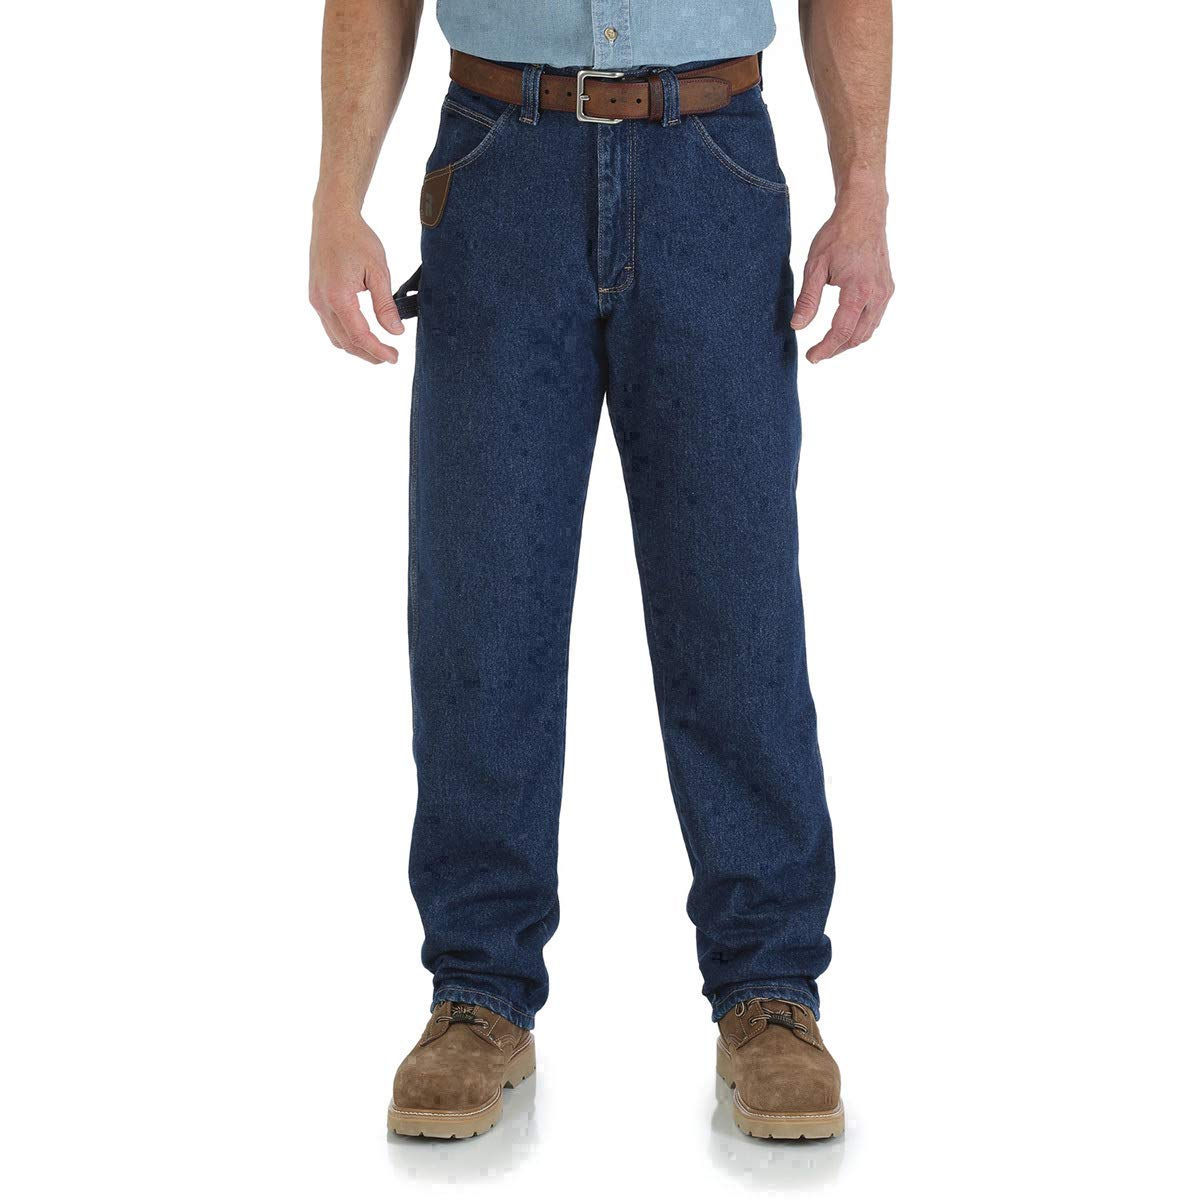 Wrangler RIGGS Workwear 34'' X 30'' Antique Indigo Wrangler RIGGS Workwear 14.5 Ounce Cotton Jeans With Front Zipper Closure